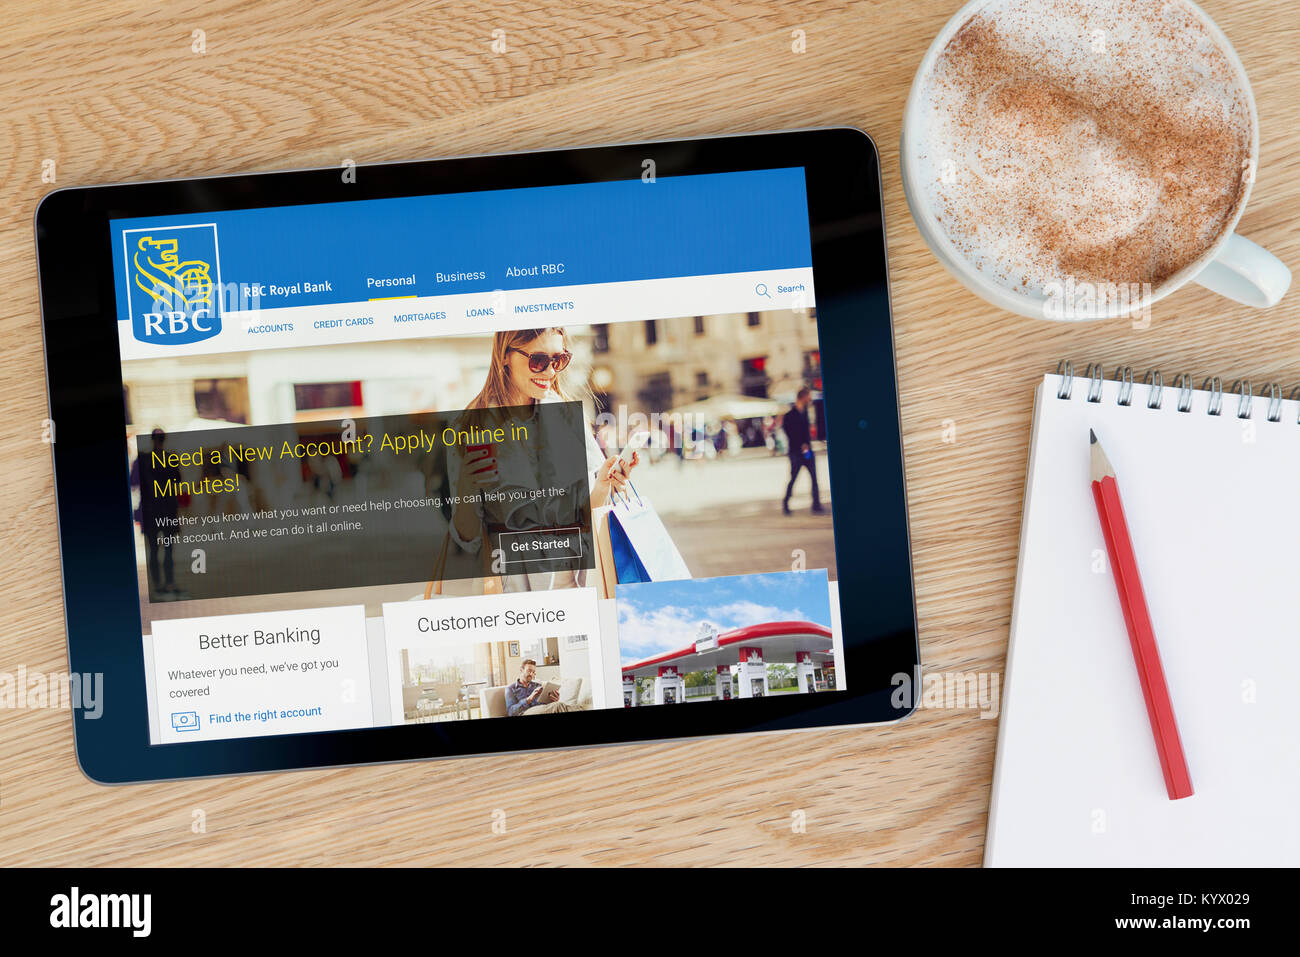 The Royal Bank of Canada website on an iPad tablet, on a wooden table beside a notepad, pencil and cup of coffee - Stock Image